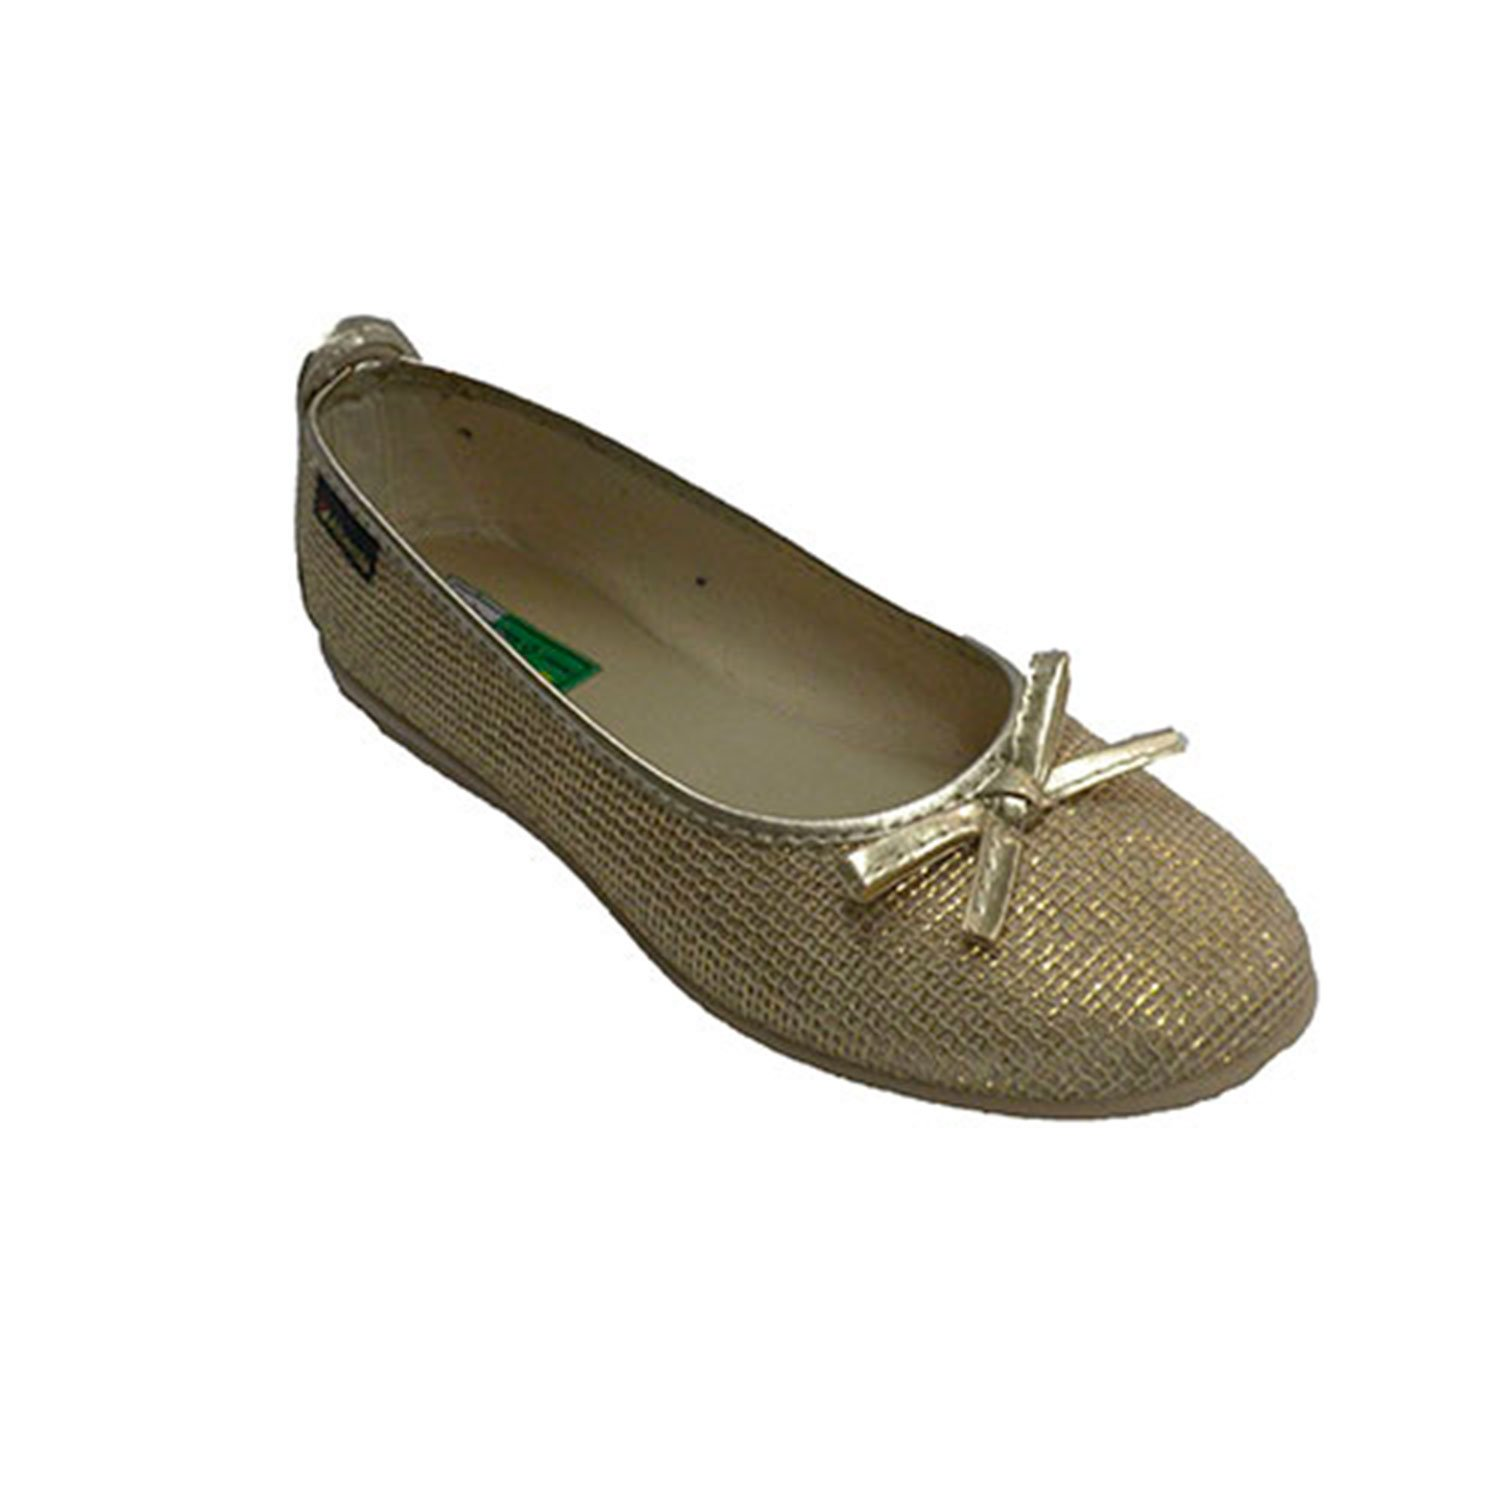 2290239e01a grid tie in flat pattern vamp woman Manoletina Alberola in golden size 37  EU  Amazon.co.uk  Shoes   Bags